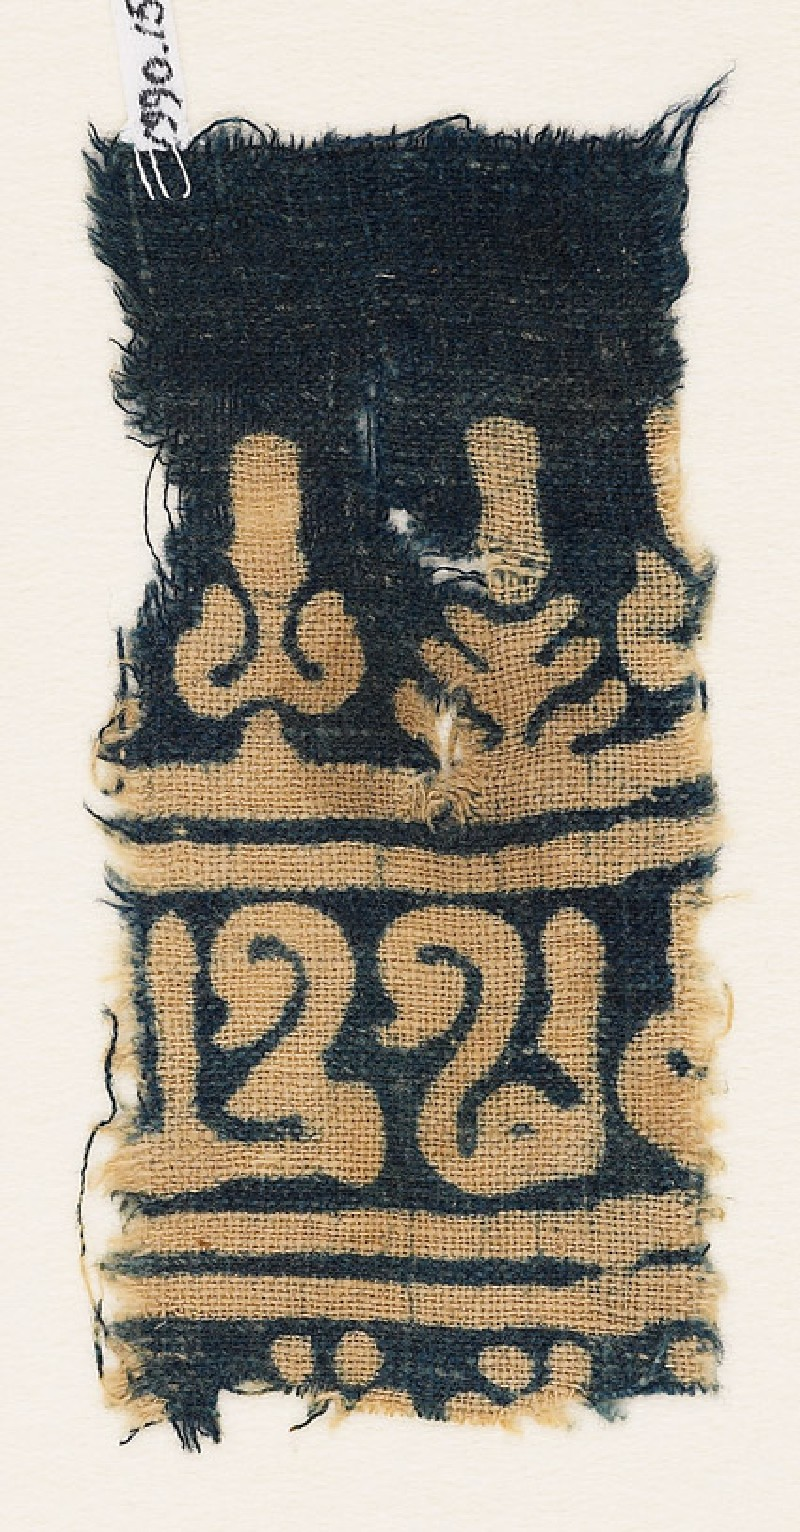 Textile fragment with inscription, stylized tree, and palmette